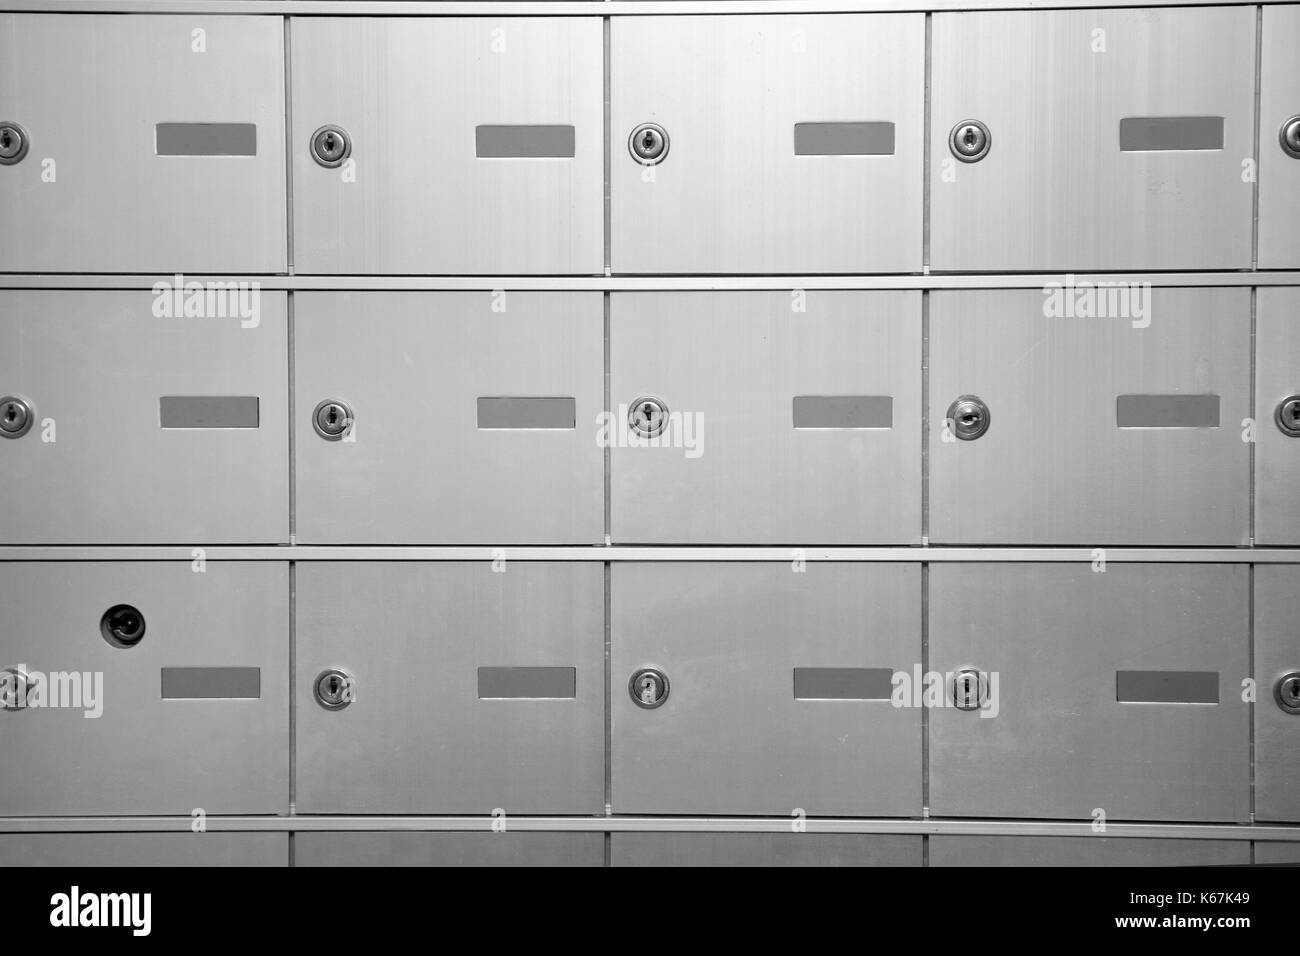 rows or grid of silver post office boxes or bank vaults with empty number plates - Stock Image